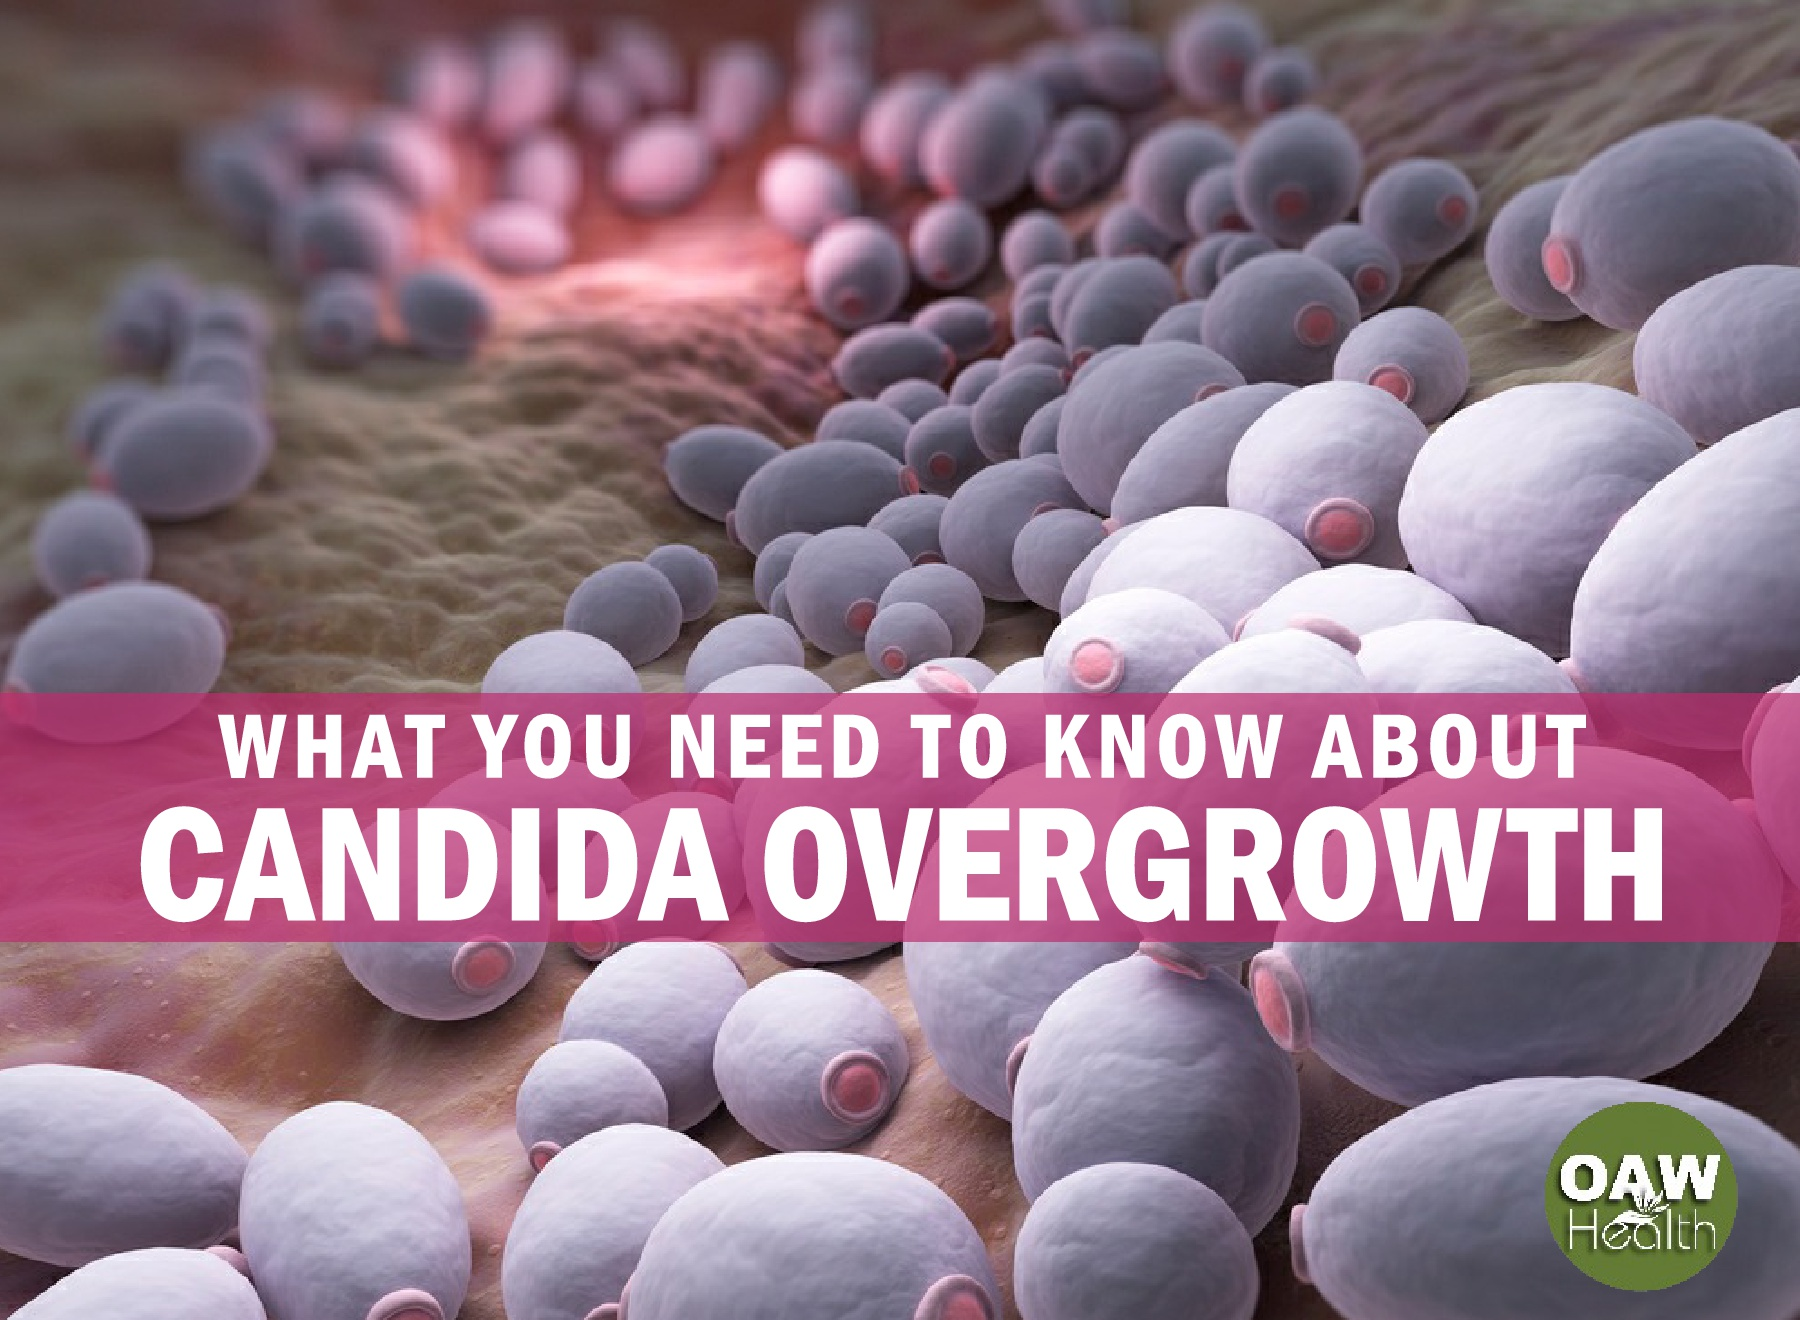 What You Need to Know about Candida Overgrowth